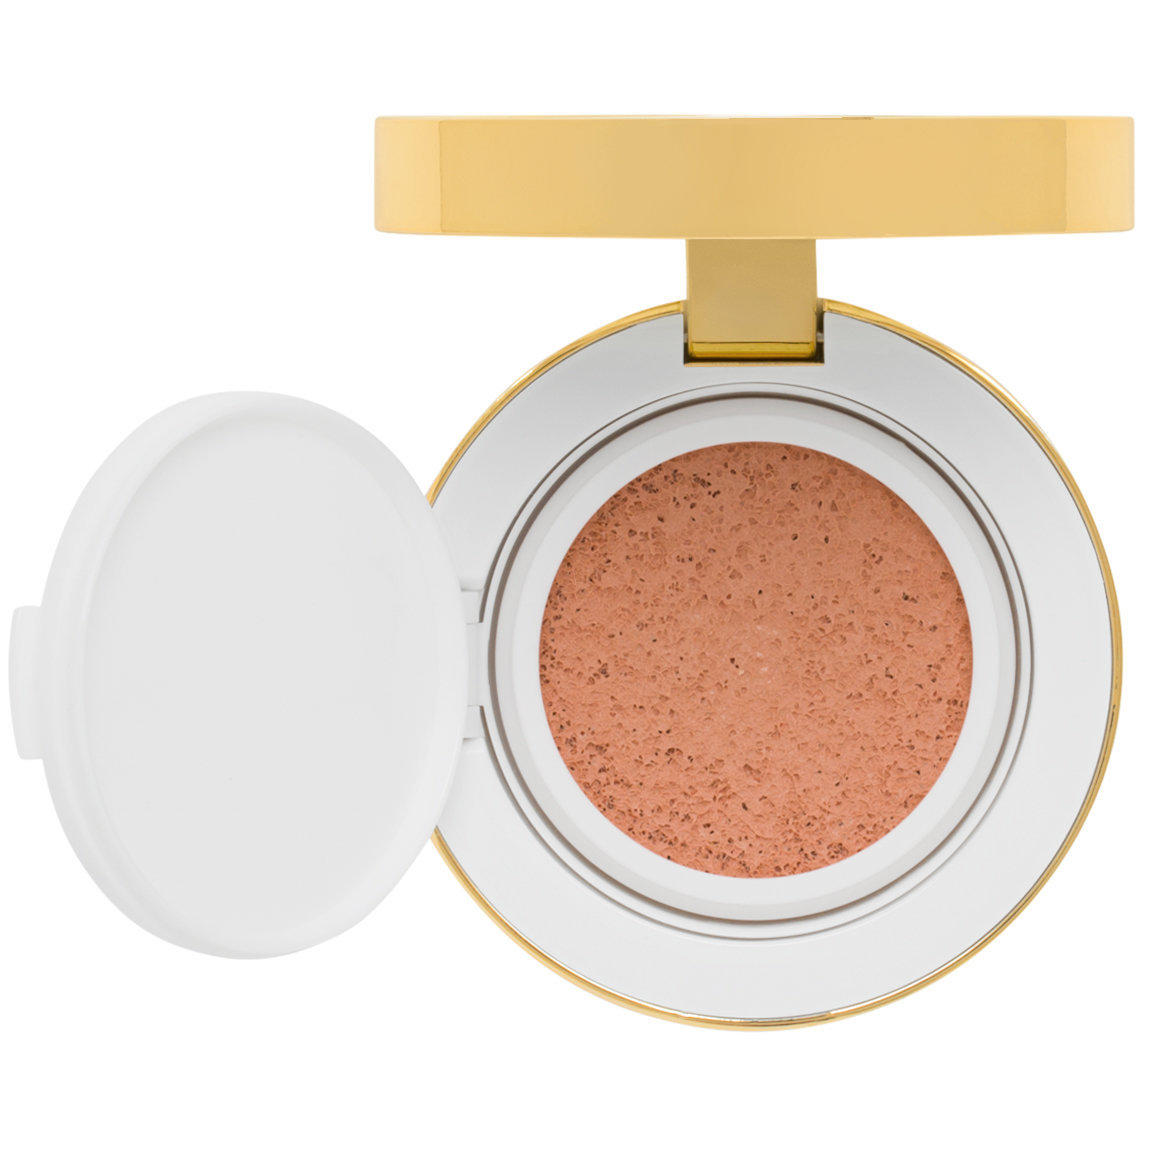 Tom Ford Soleil Foundation Hydrating Cushion Compact Pink Glow Tone Up